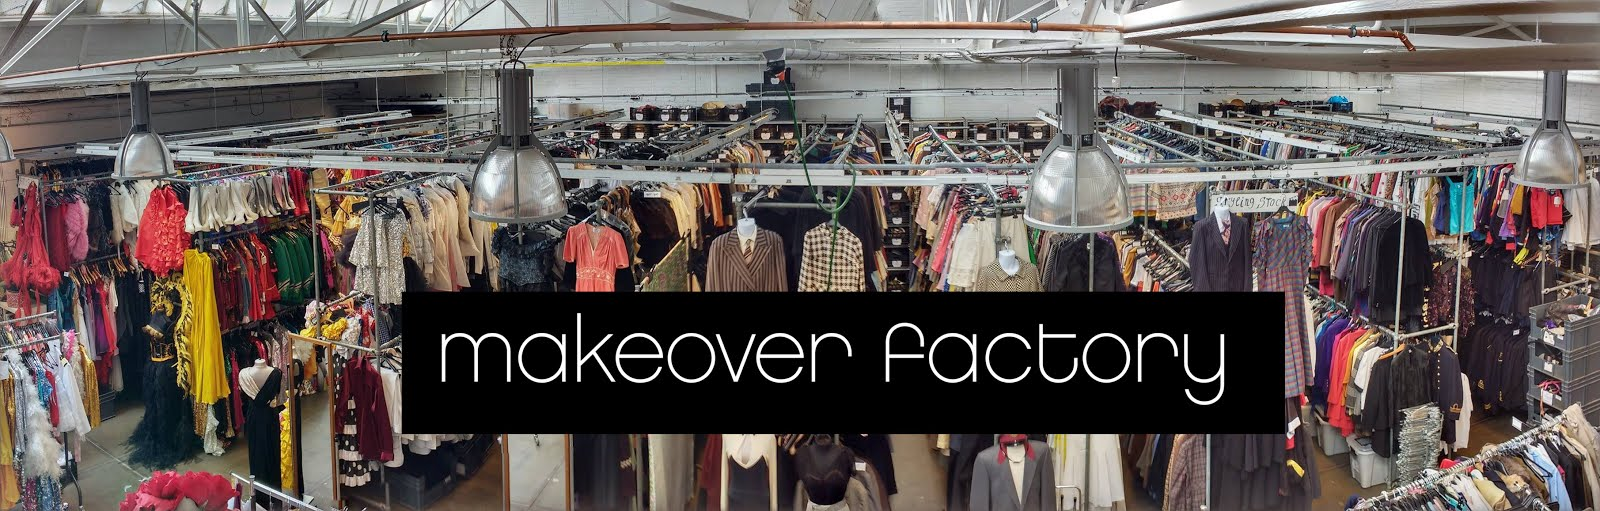 Alternatief Kostuum Amsterdam | Makeover Factory & Stylingstock